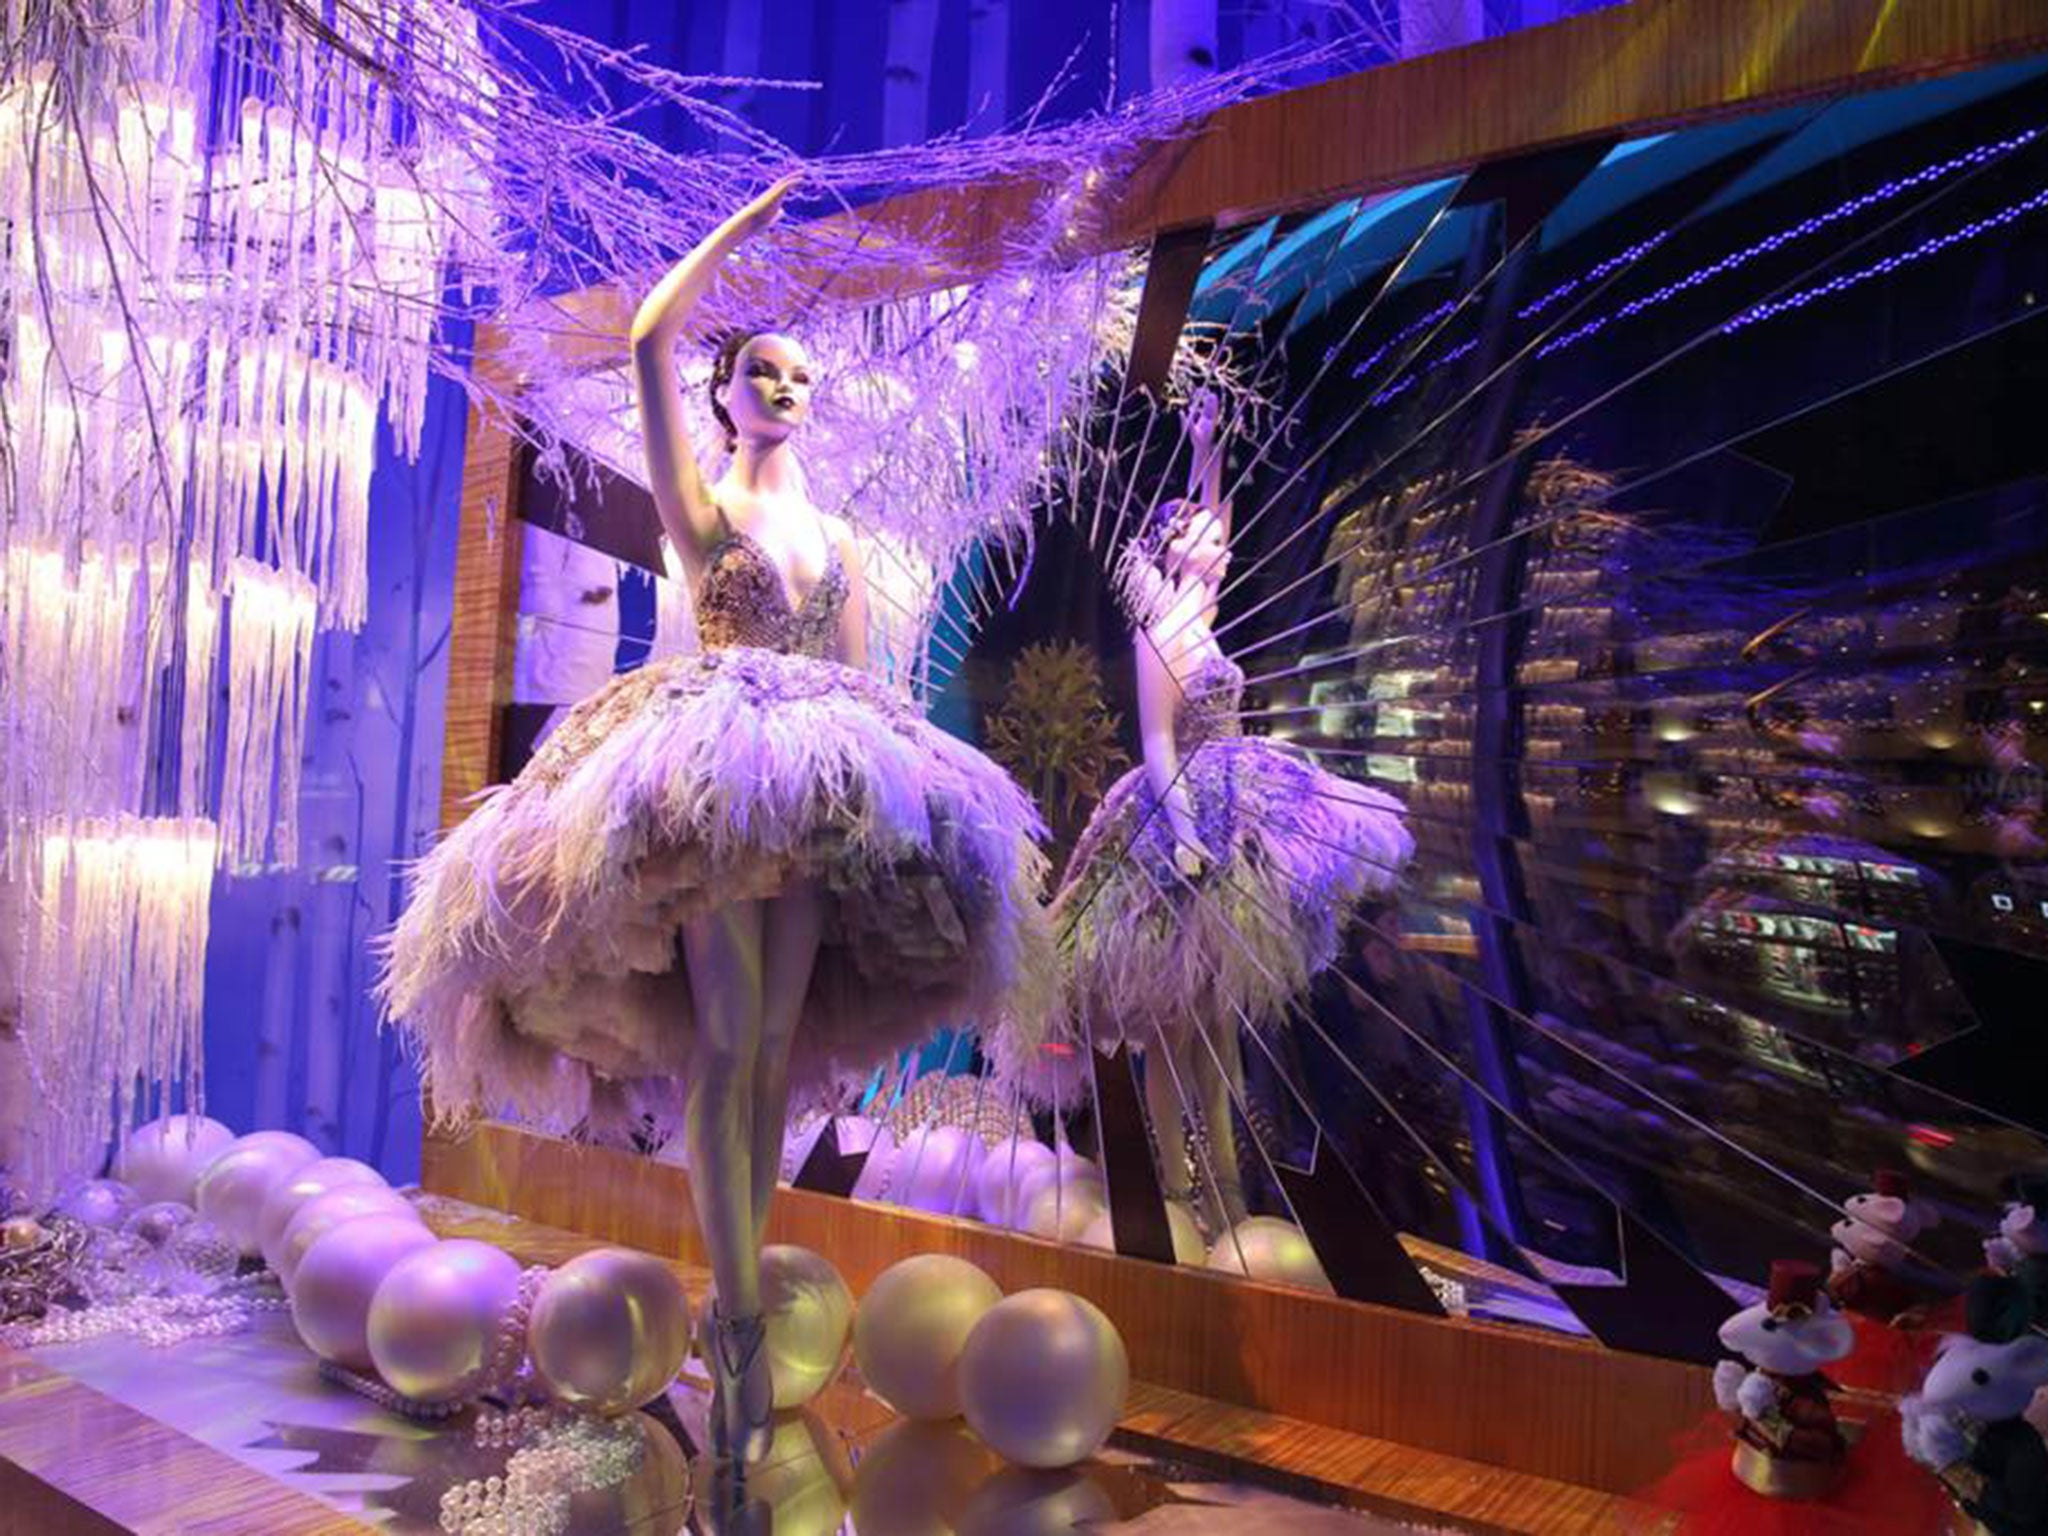 #341FAC Harrods Launches Christmas Window Displays And First  6443 decoration noel londres 2016 2048x1536 px @ aertt.com